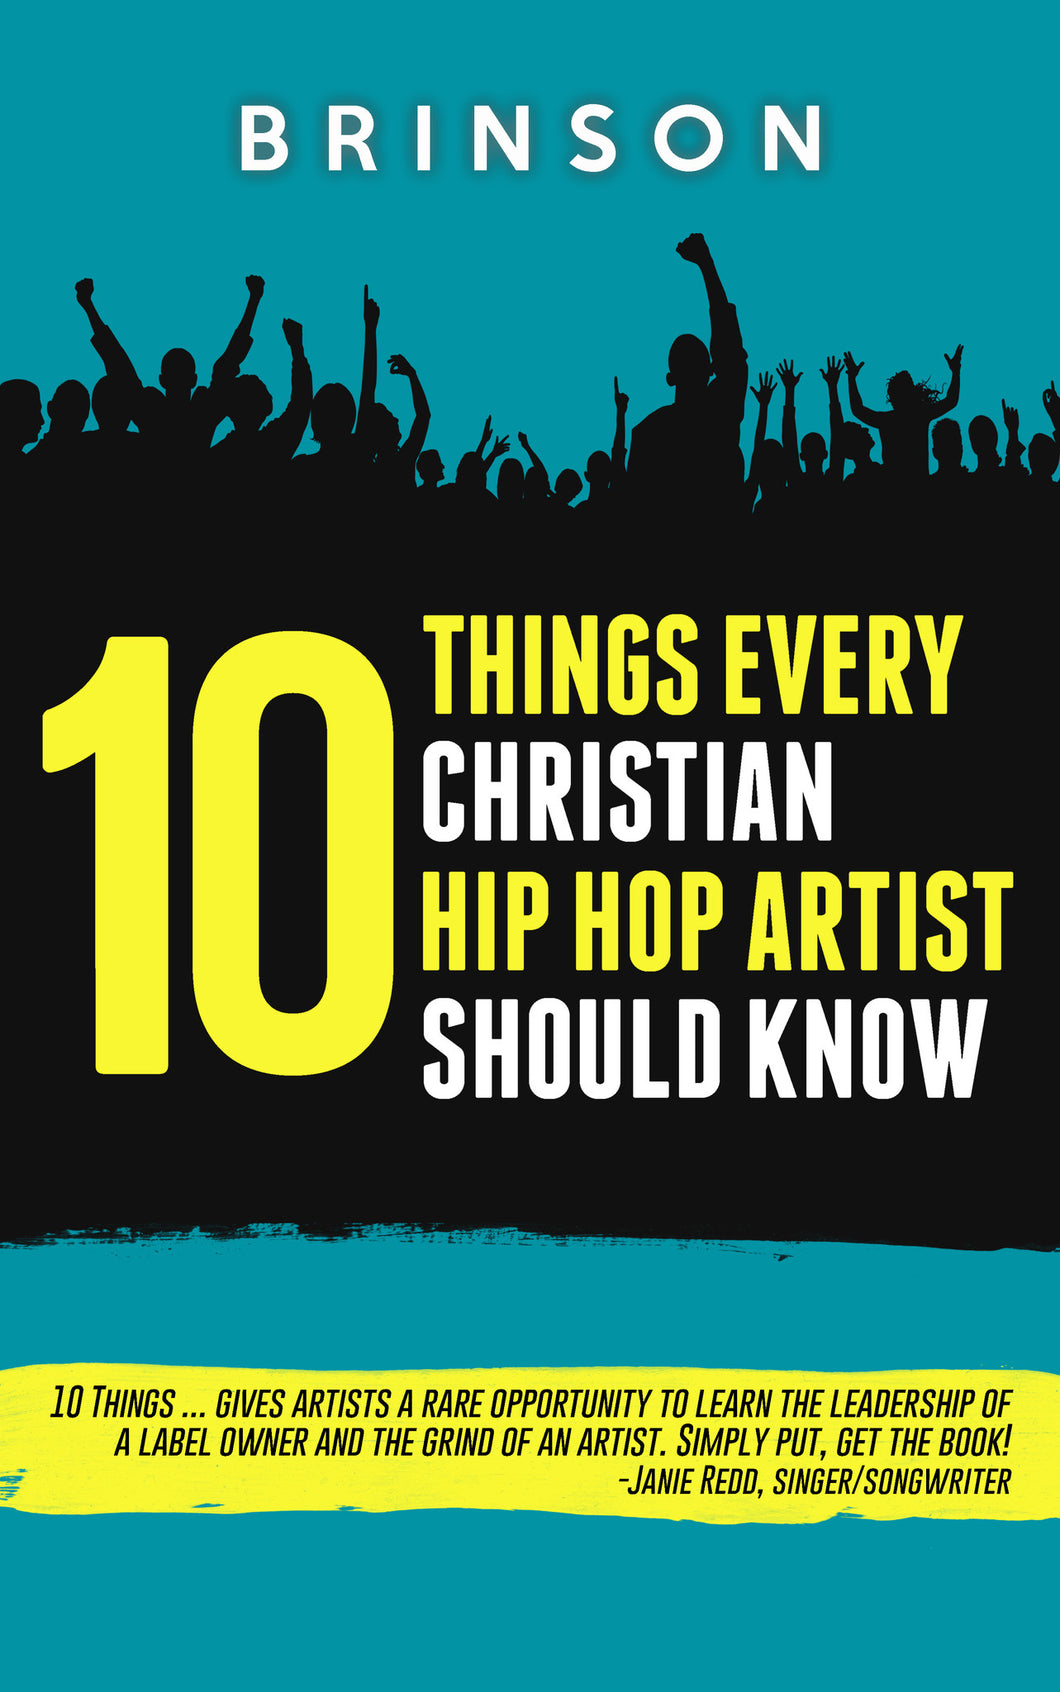 Book: 10 Things Every Christian Hip Hop Artist Should Know by Brinson